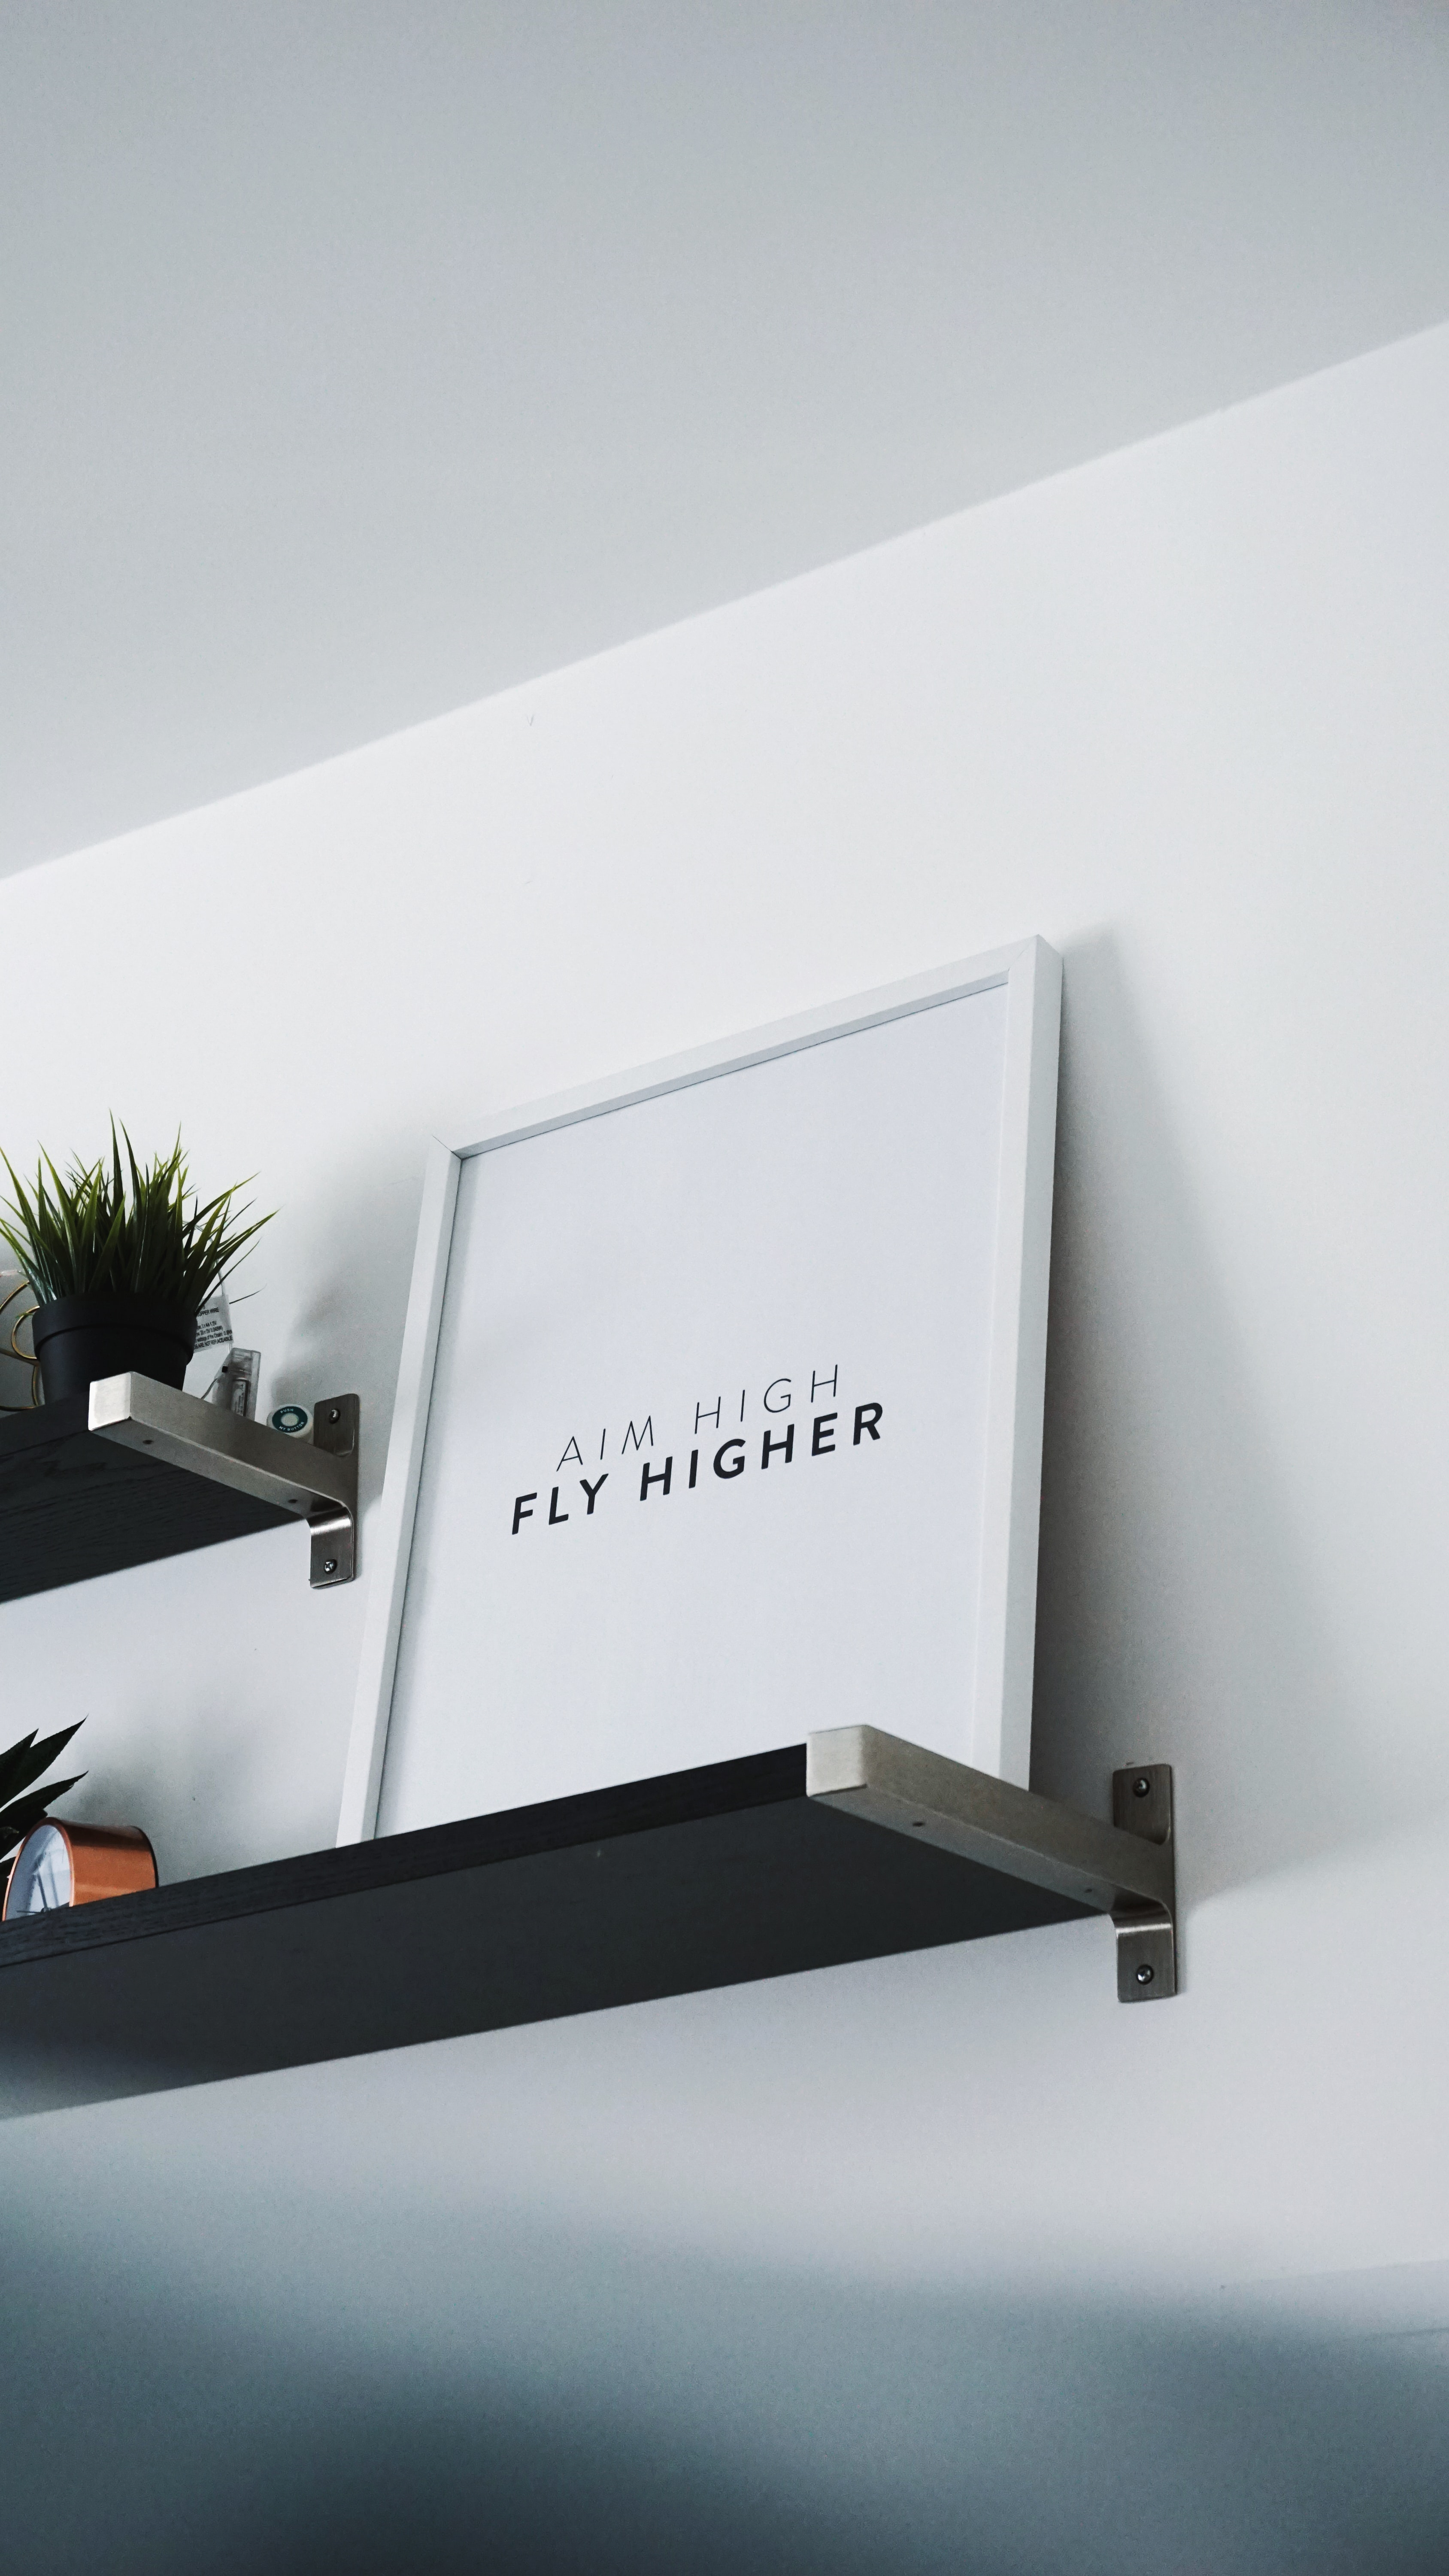 Aim higher to fly higher, is a state of mind.